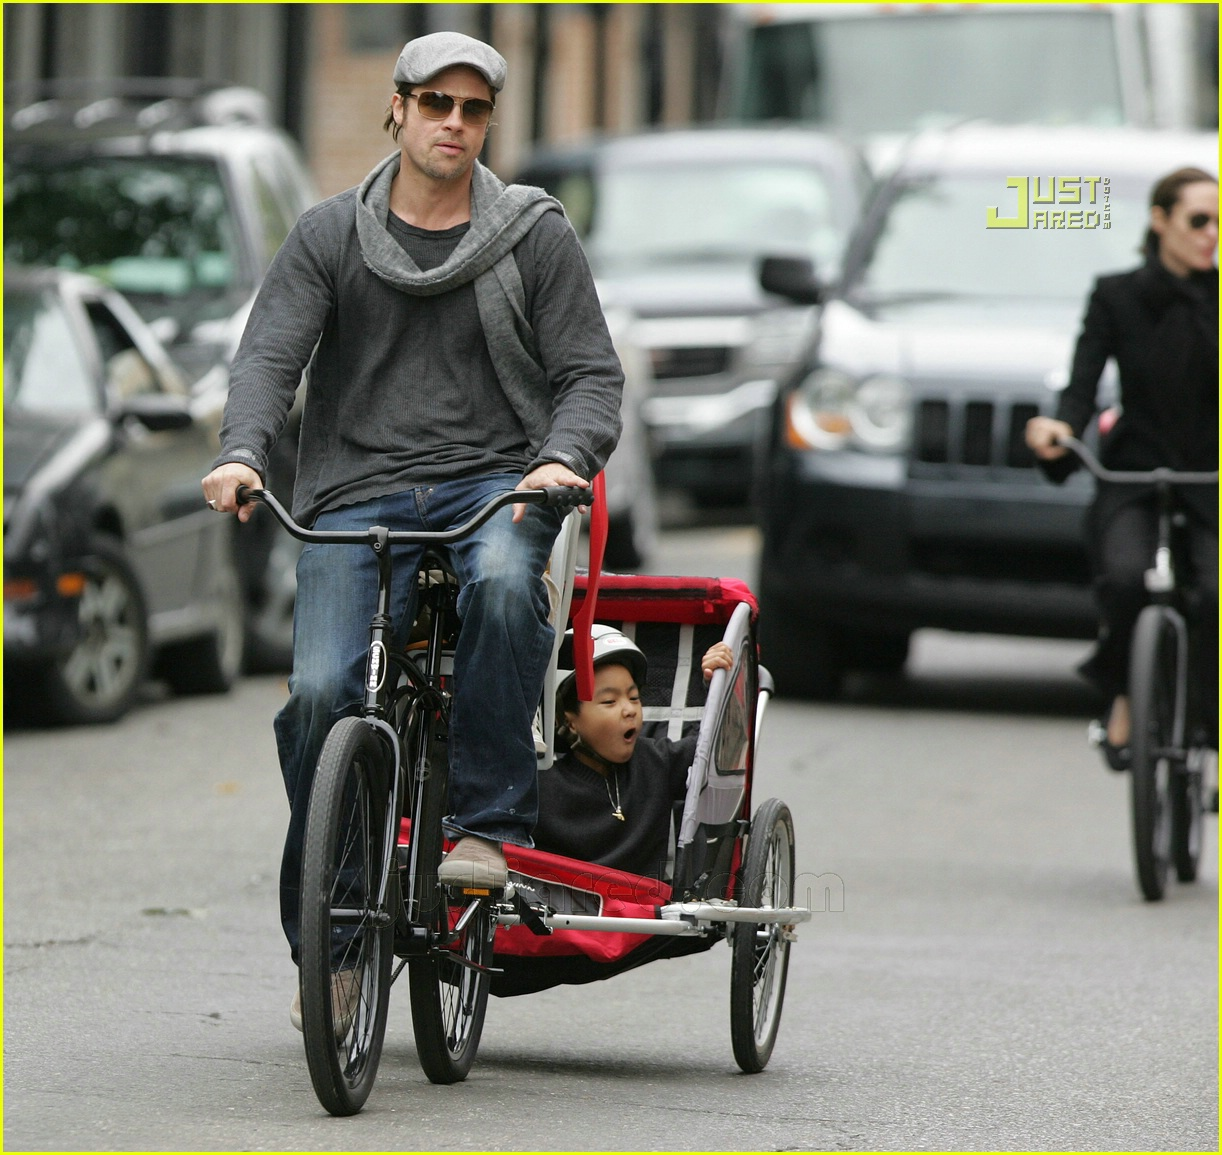 Full Sized Photo Of Brad Pitt Bicycle Built For Four 17